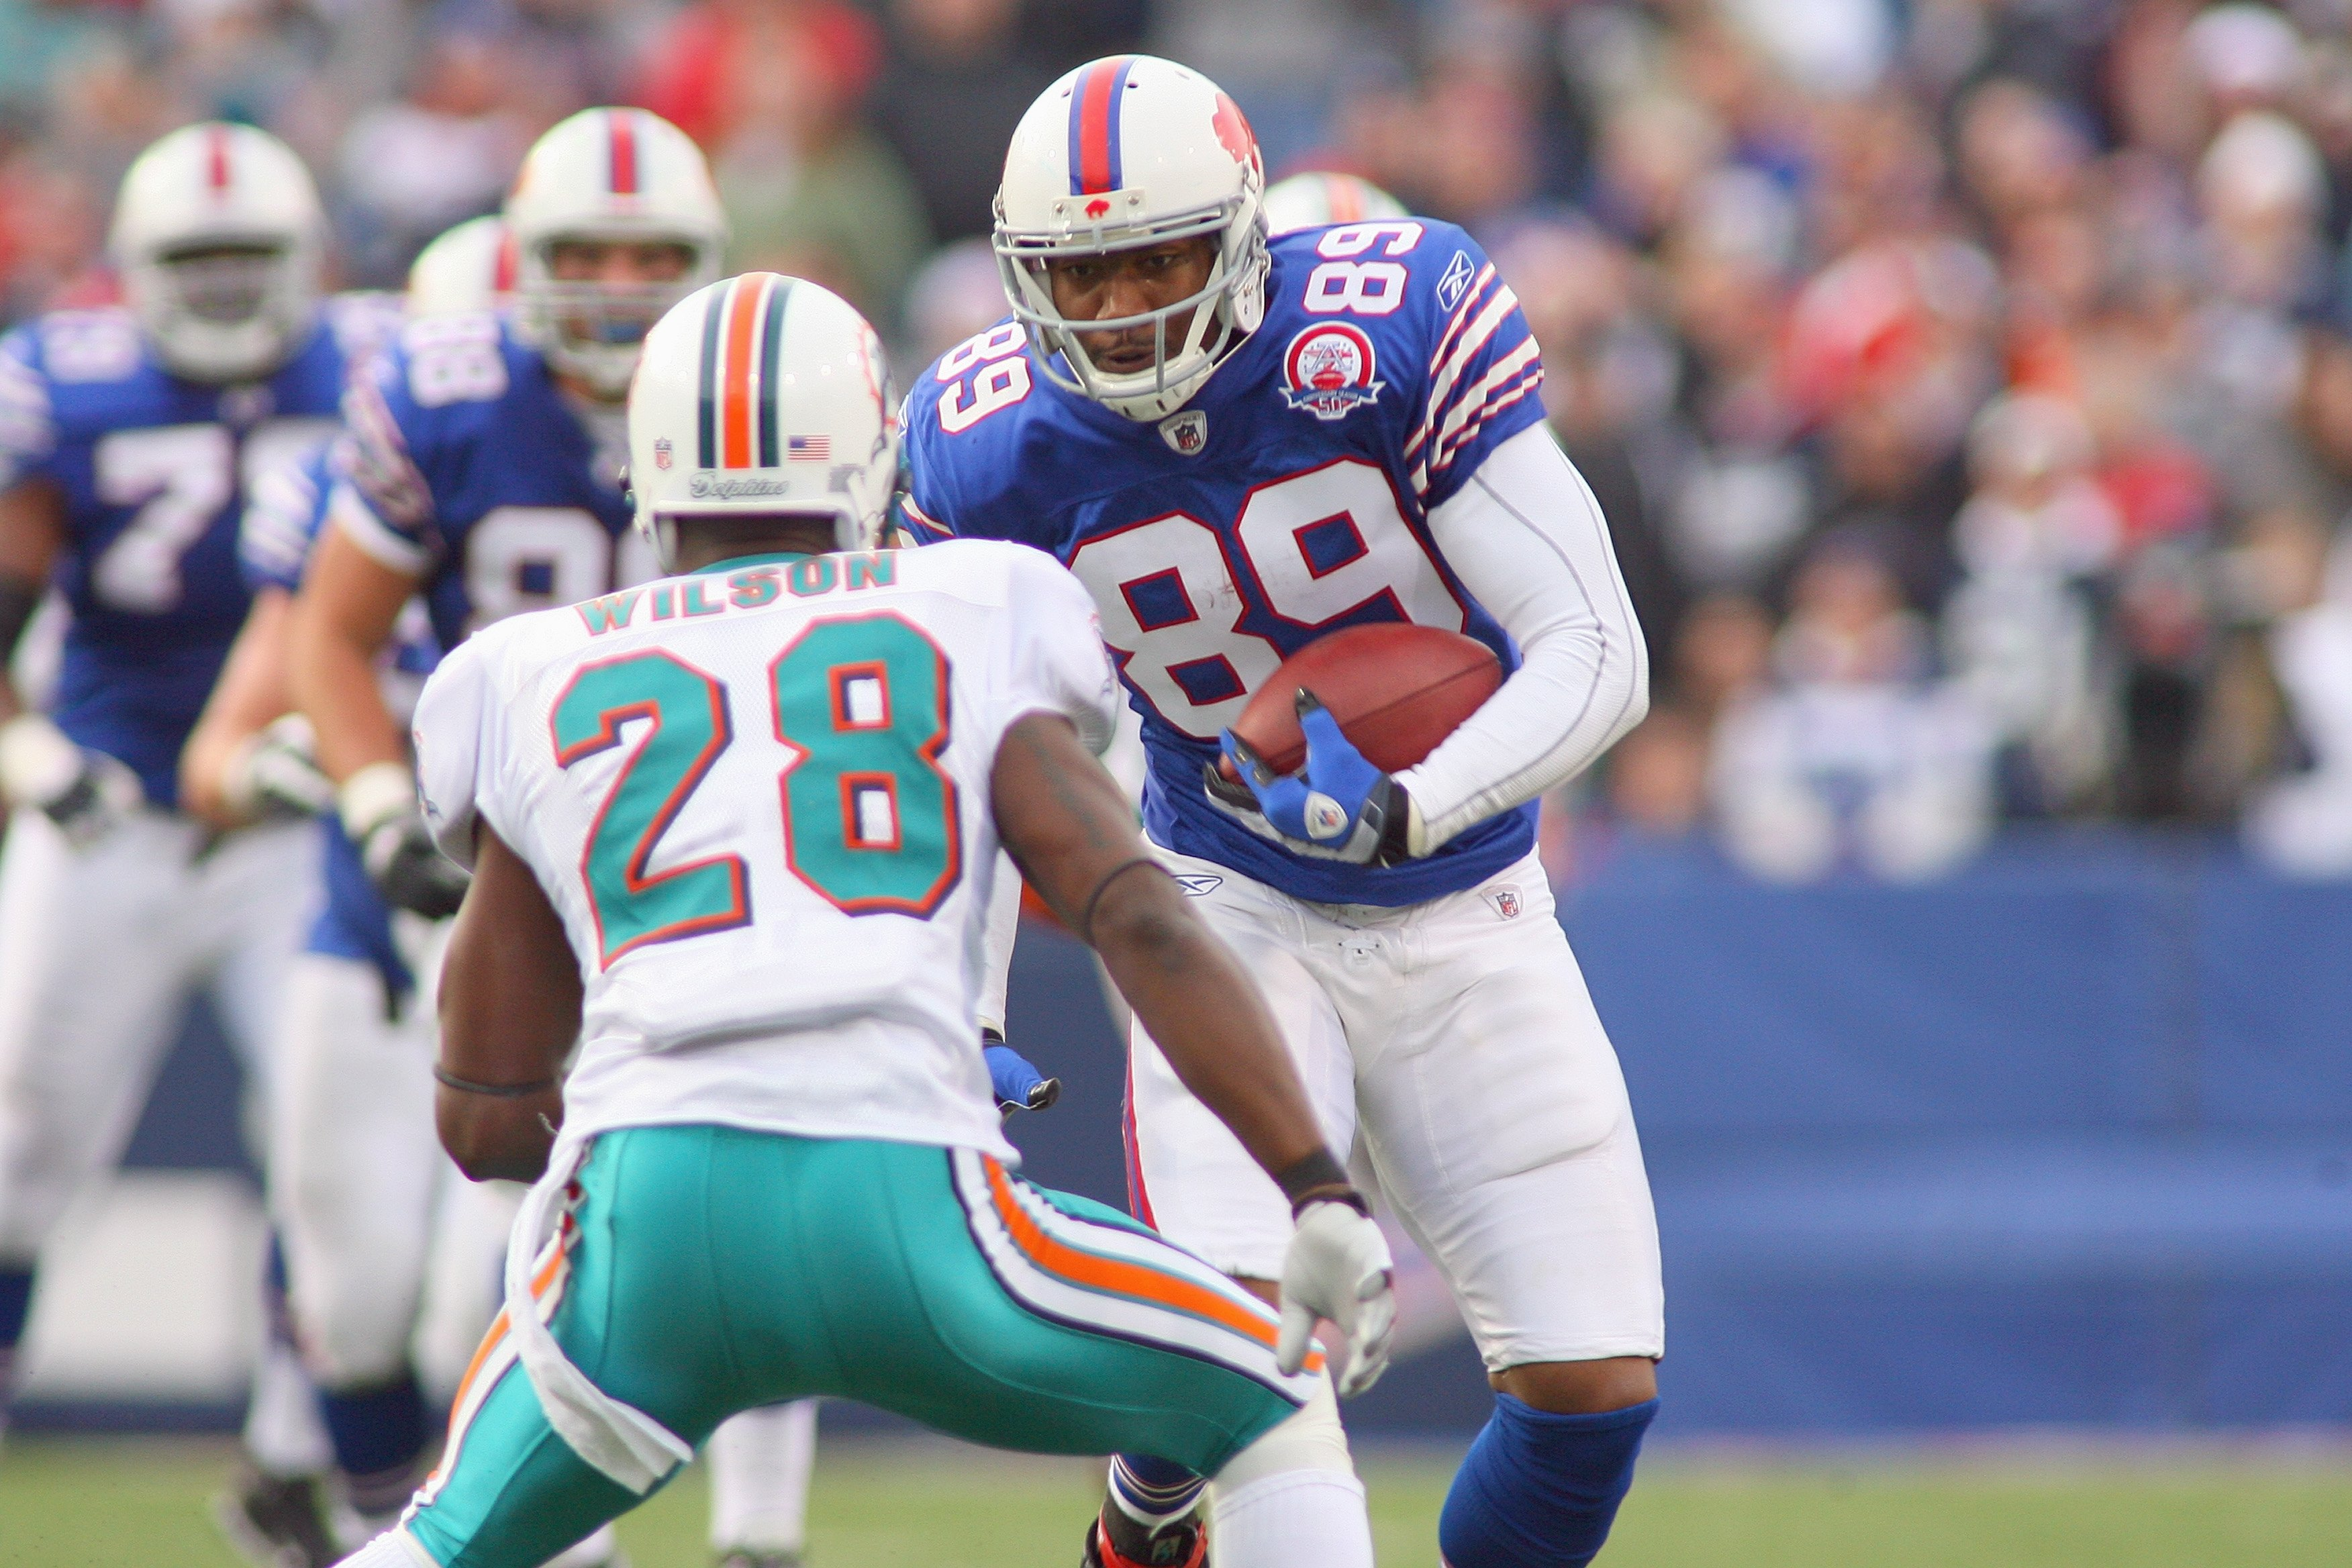 ORCHARD PARK, NY - NOVEMBER 29:  Shawn Nelson #89 of the Buffalo Bills carries the ball against Gibril Wilson #28 of the Miami Dolphins at Ralph Wilson Stadium on November 29, 2009 in Orchard Park, New York. Buffalo won 31-14. (Photo by Rick Stewart/Getty